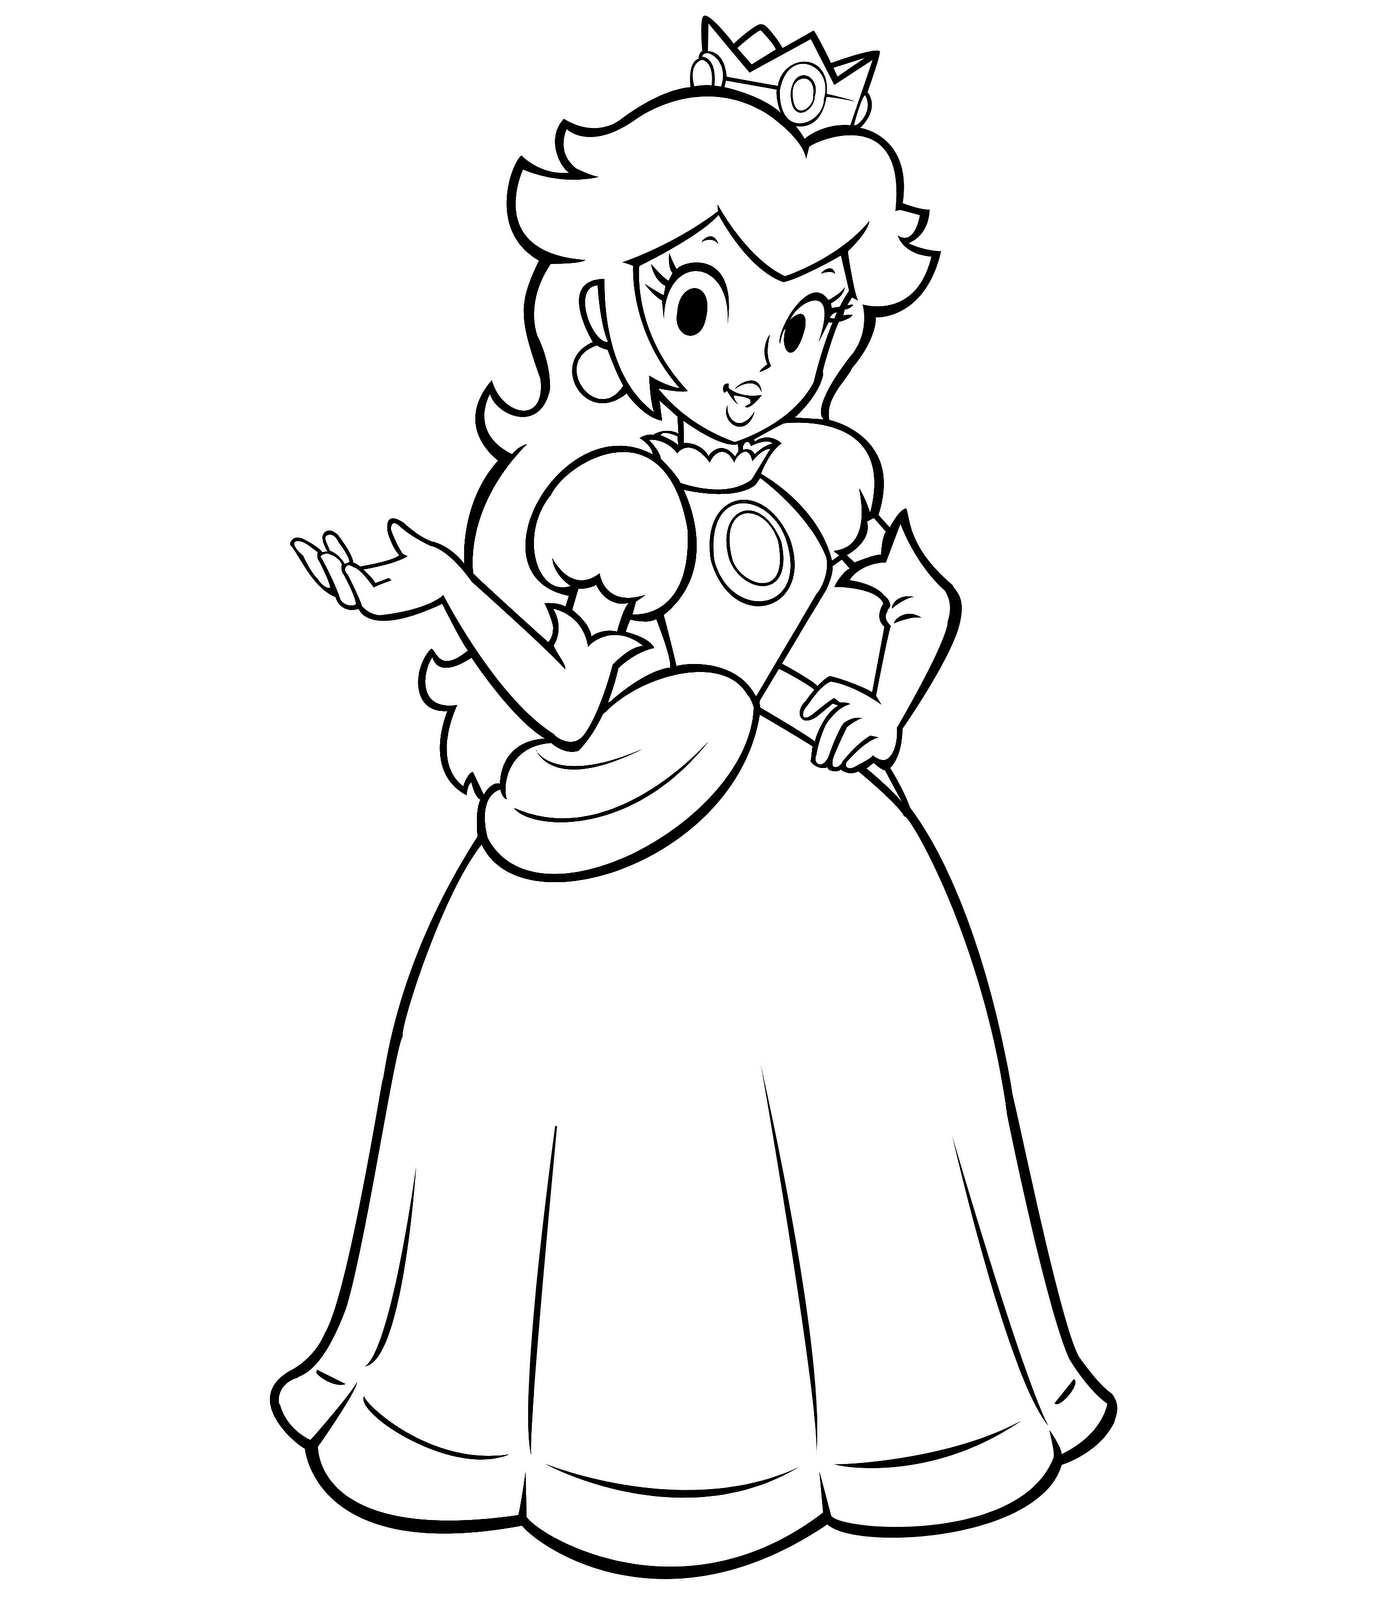 easy princess coloring pages - photo#16